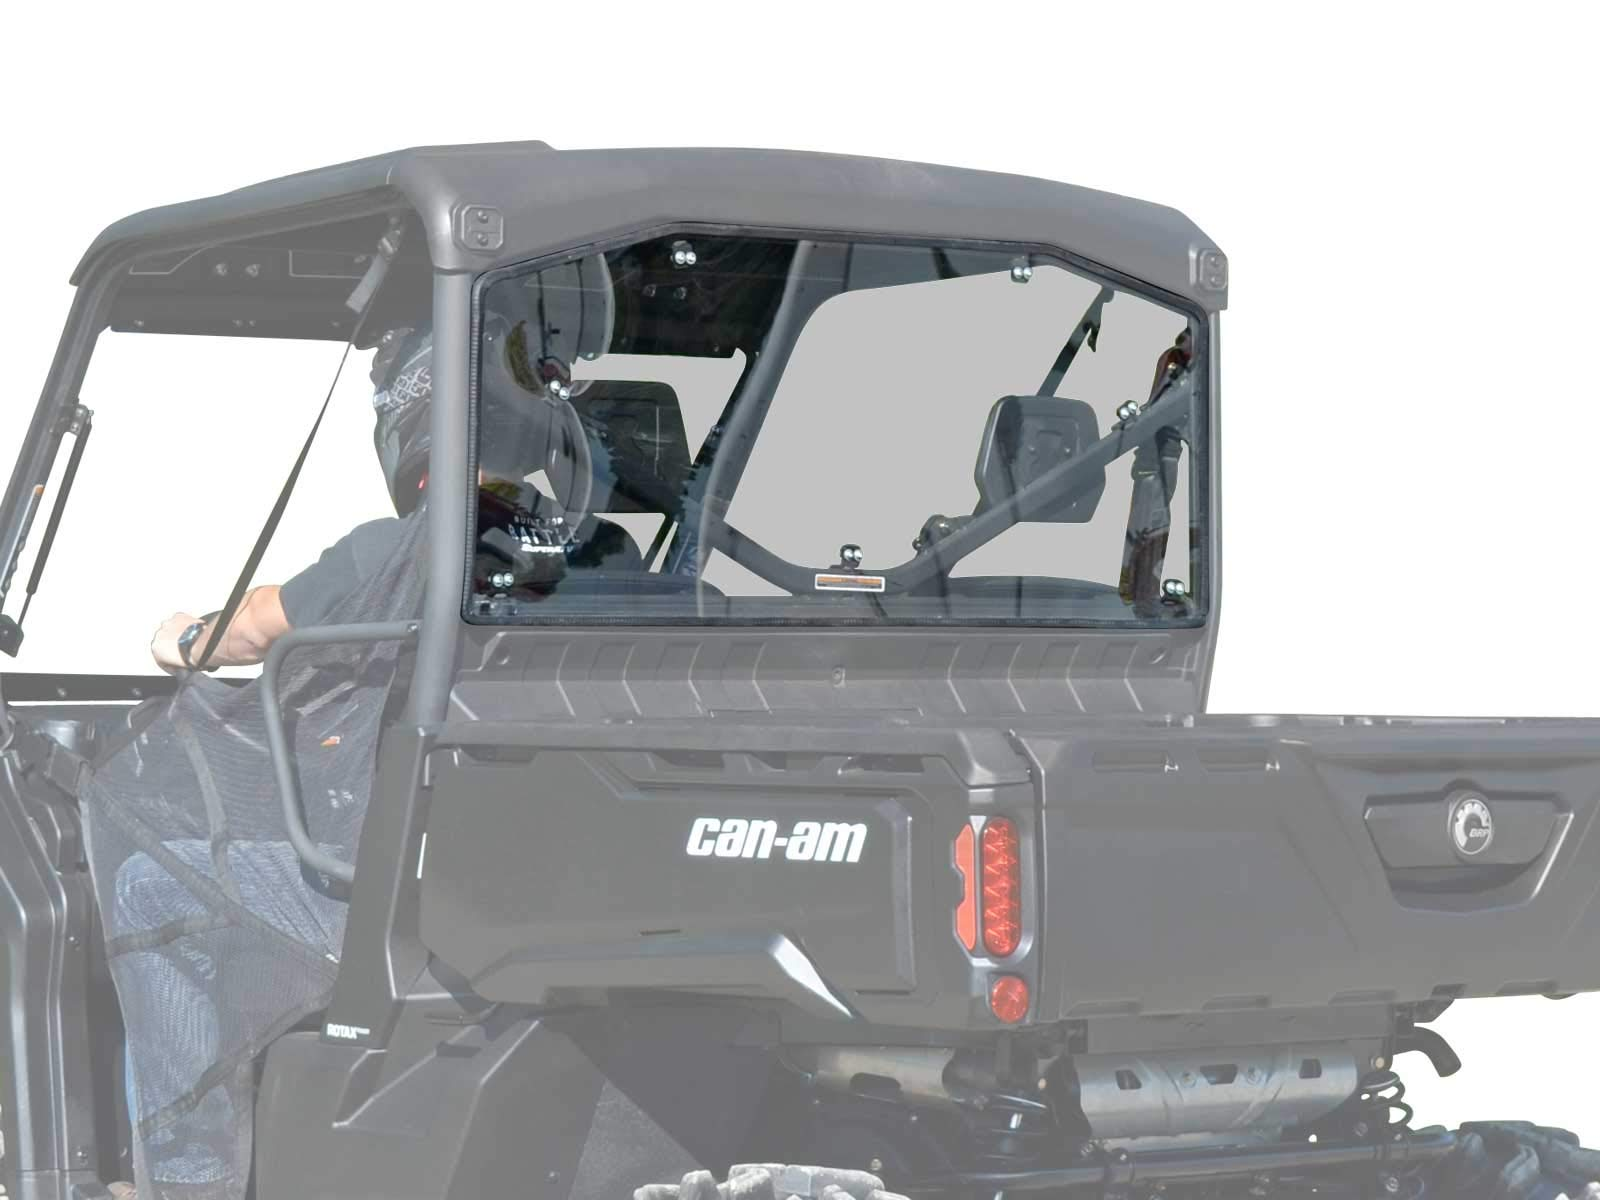 SuperATV Heavy Duty Rear Windshield for Can-Am Defender (2016+) - Light Tint Standard Polycarbonate - Easy to Install!